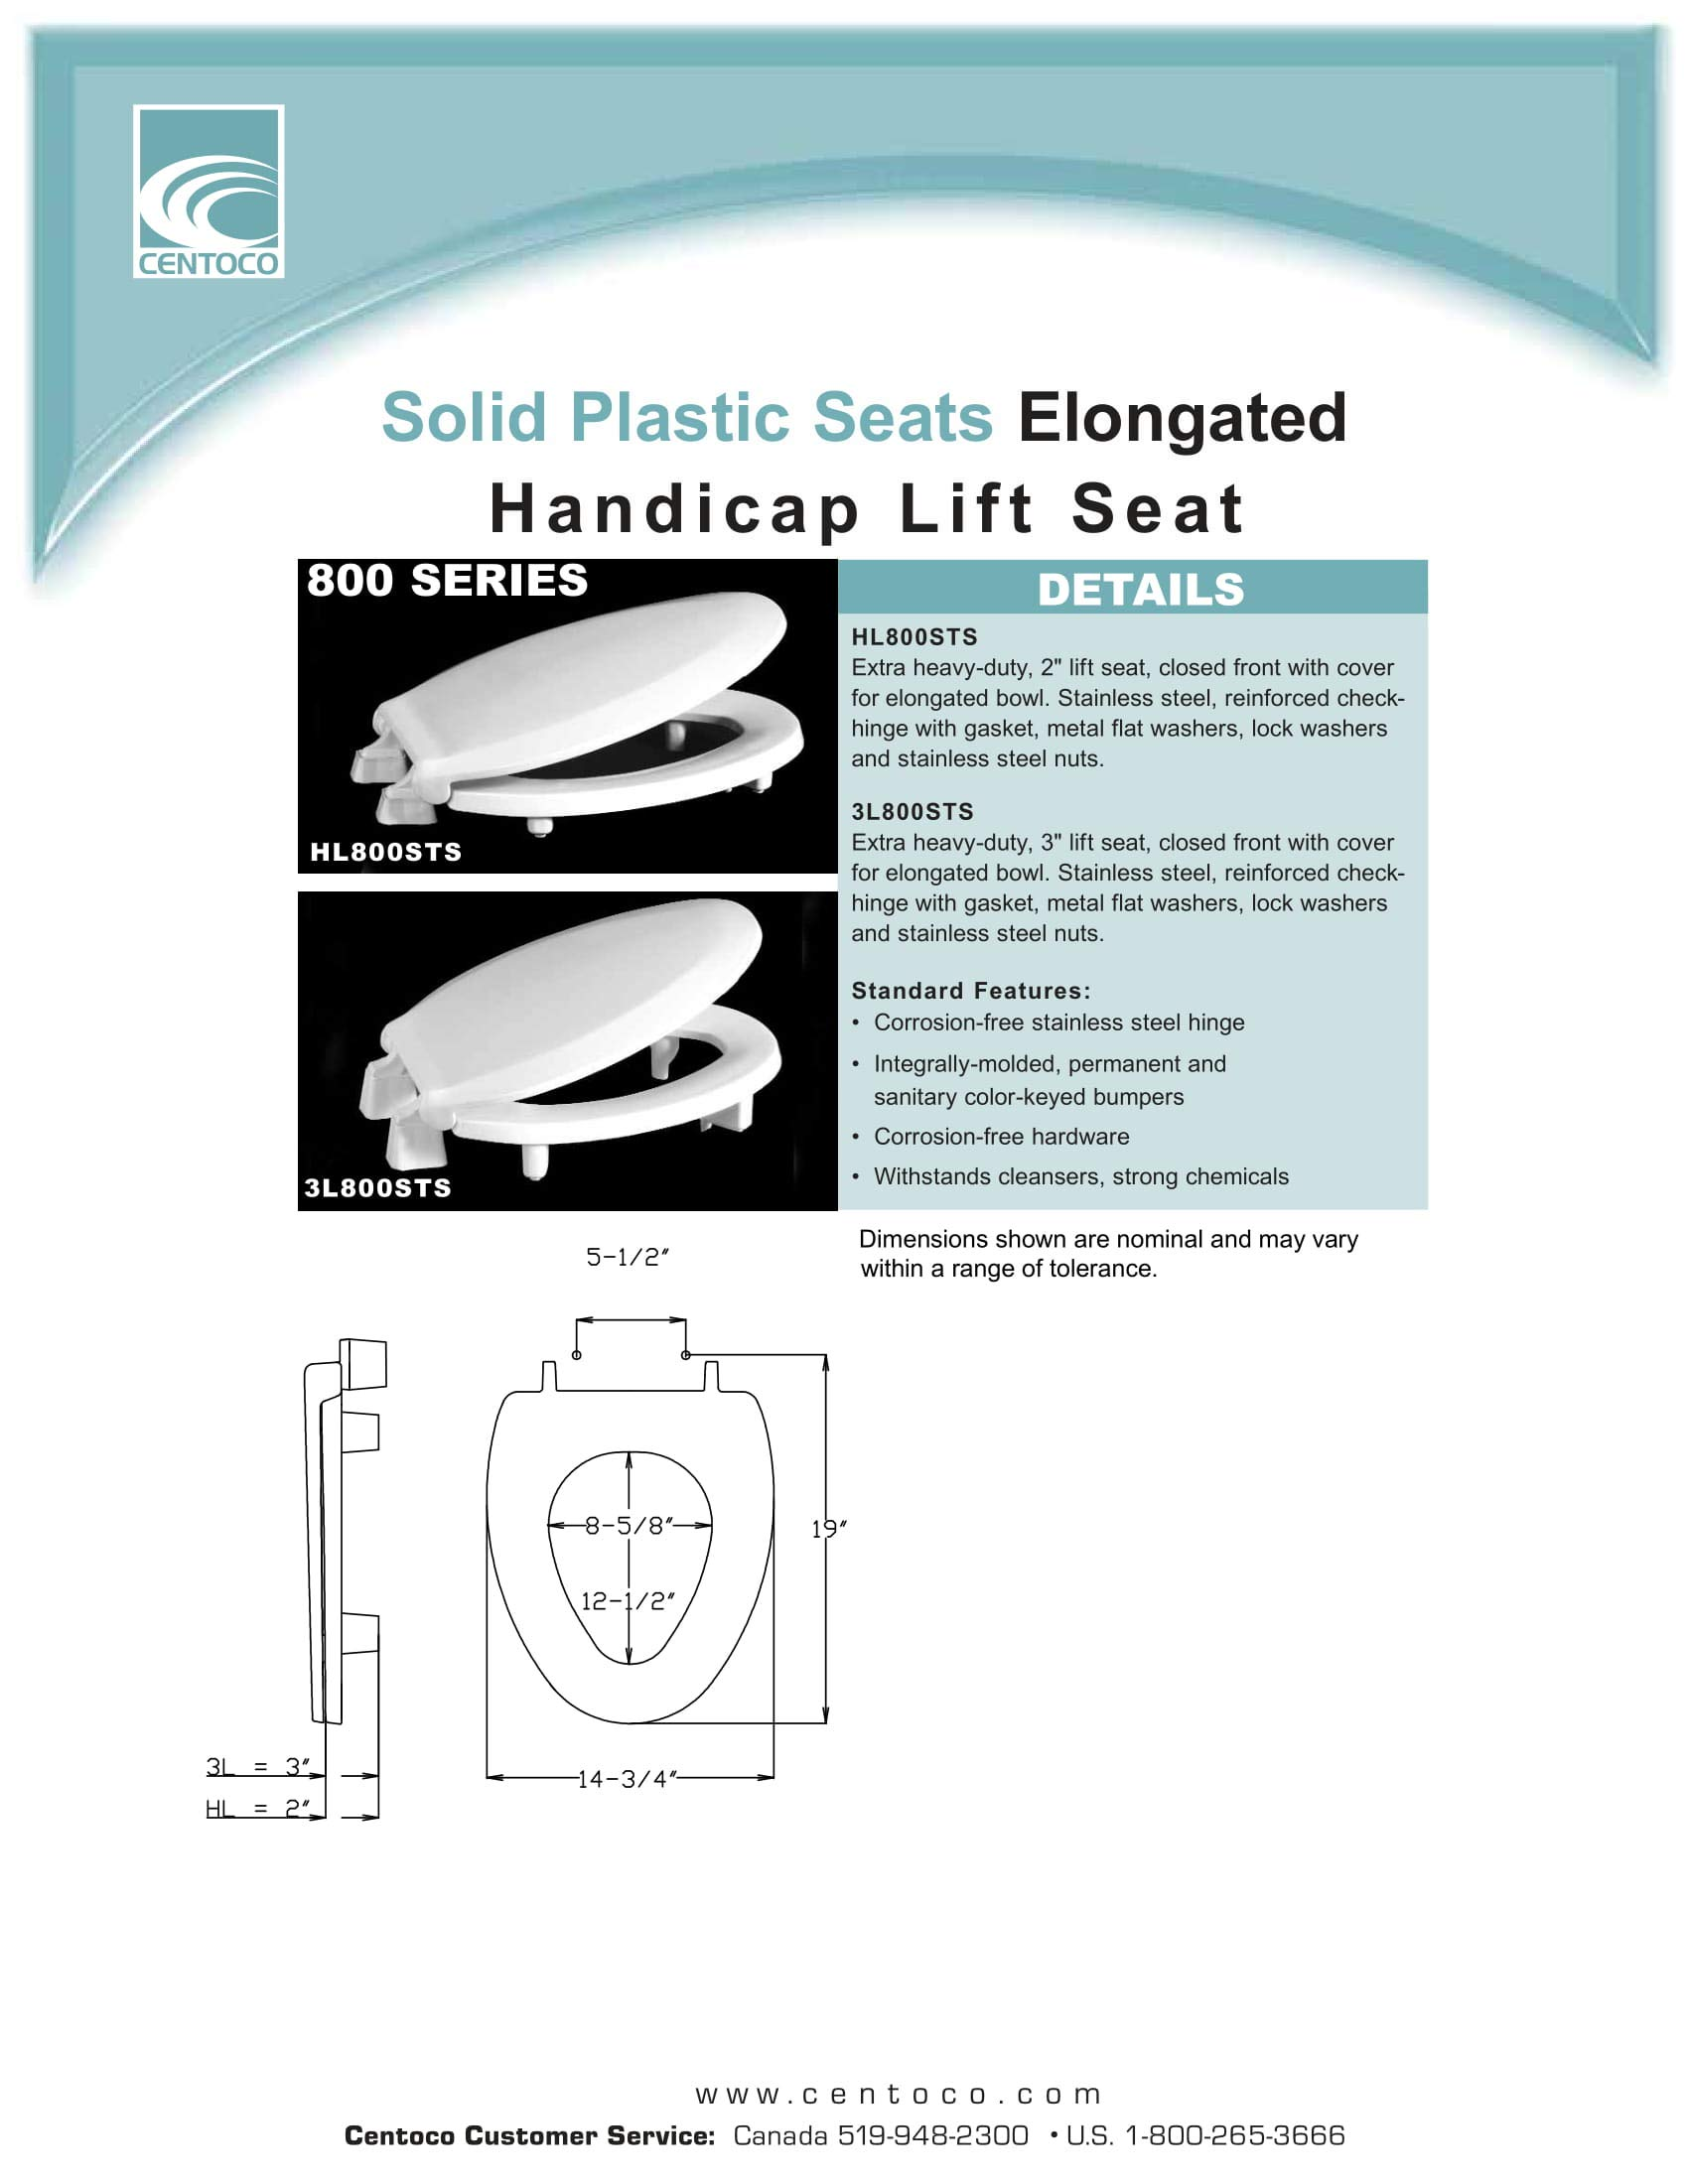 Centoco 3L800STS-001 Elongated 3'' Lift, Raised Plastic Toilet Seat, Closed Front with Cover, ADA Compliant Handicap Medical Assistance Seat, White by Centoco (Image #3)